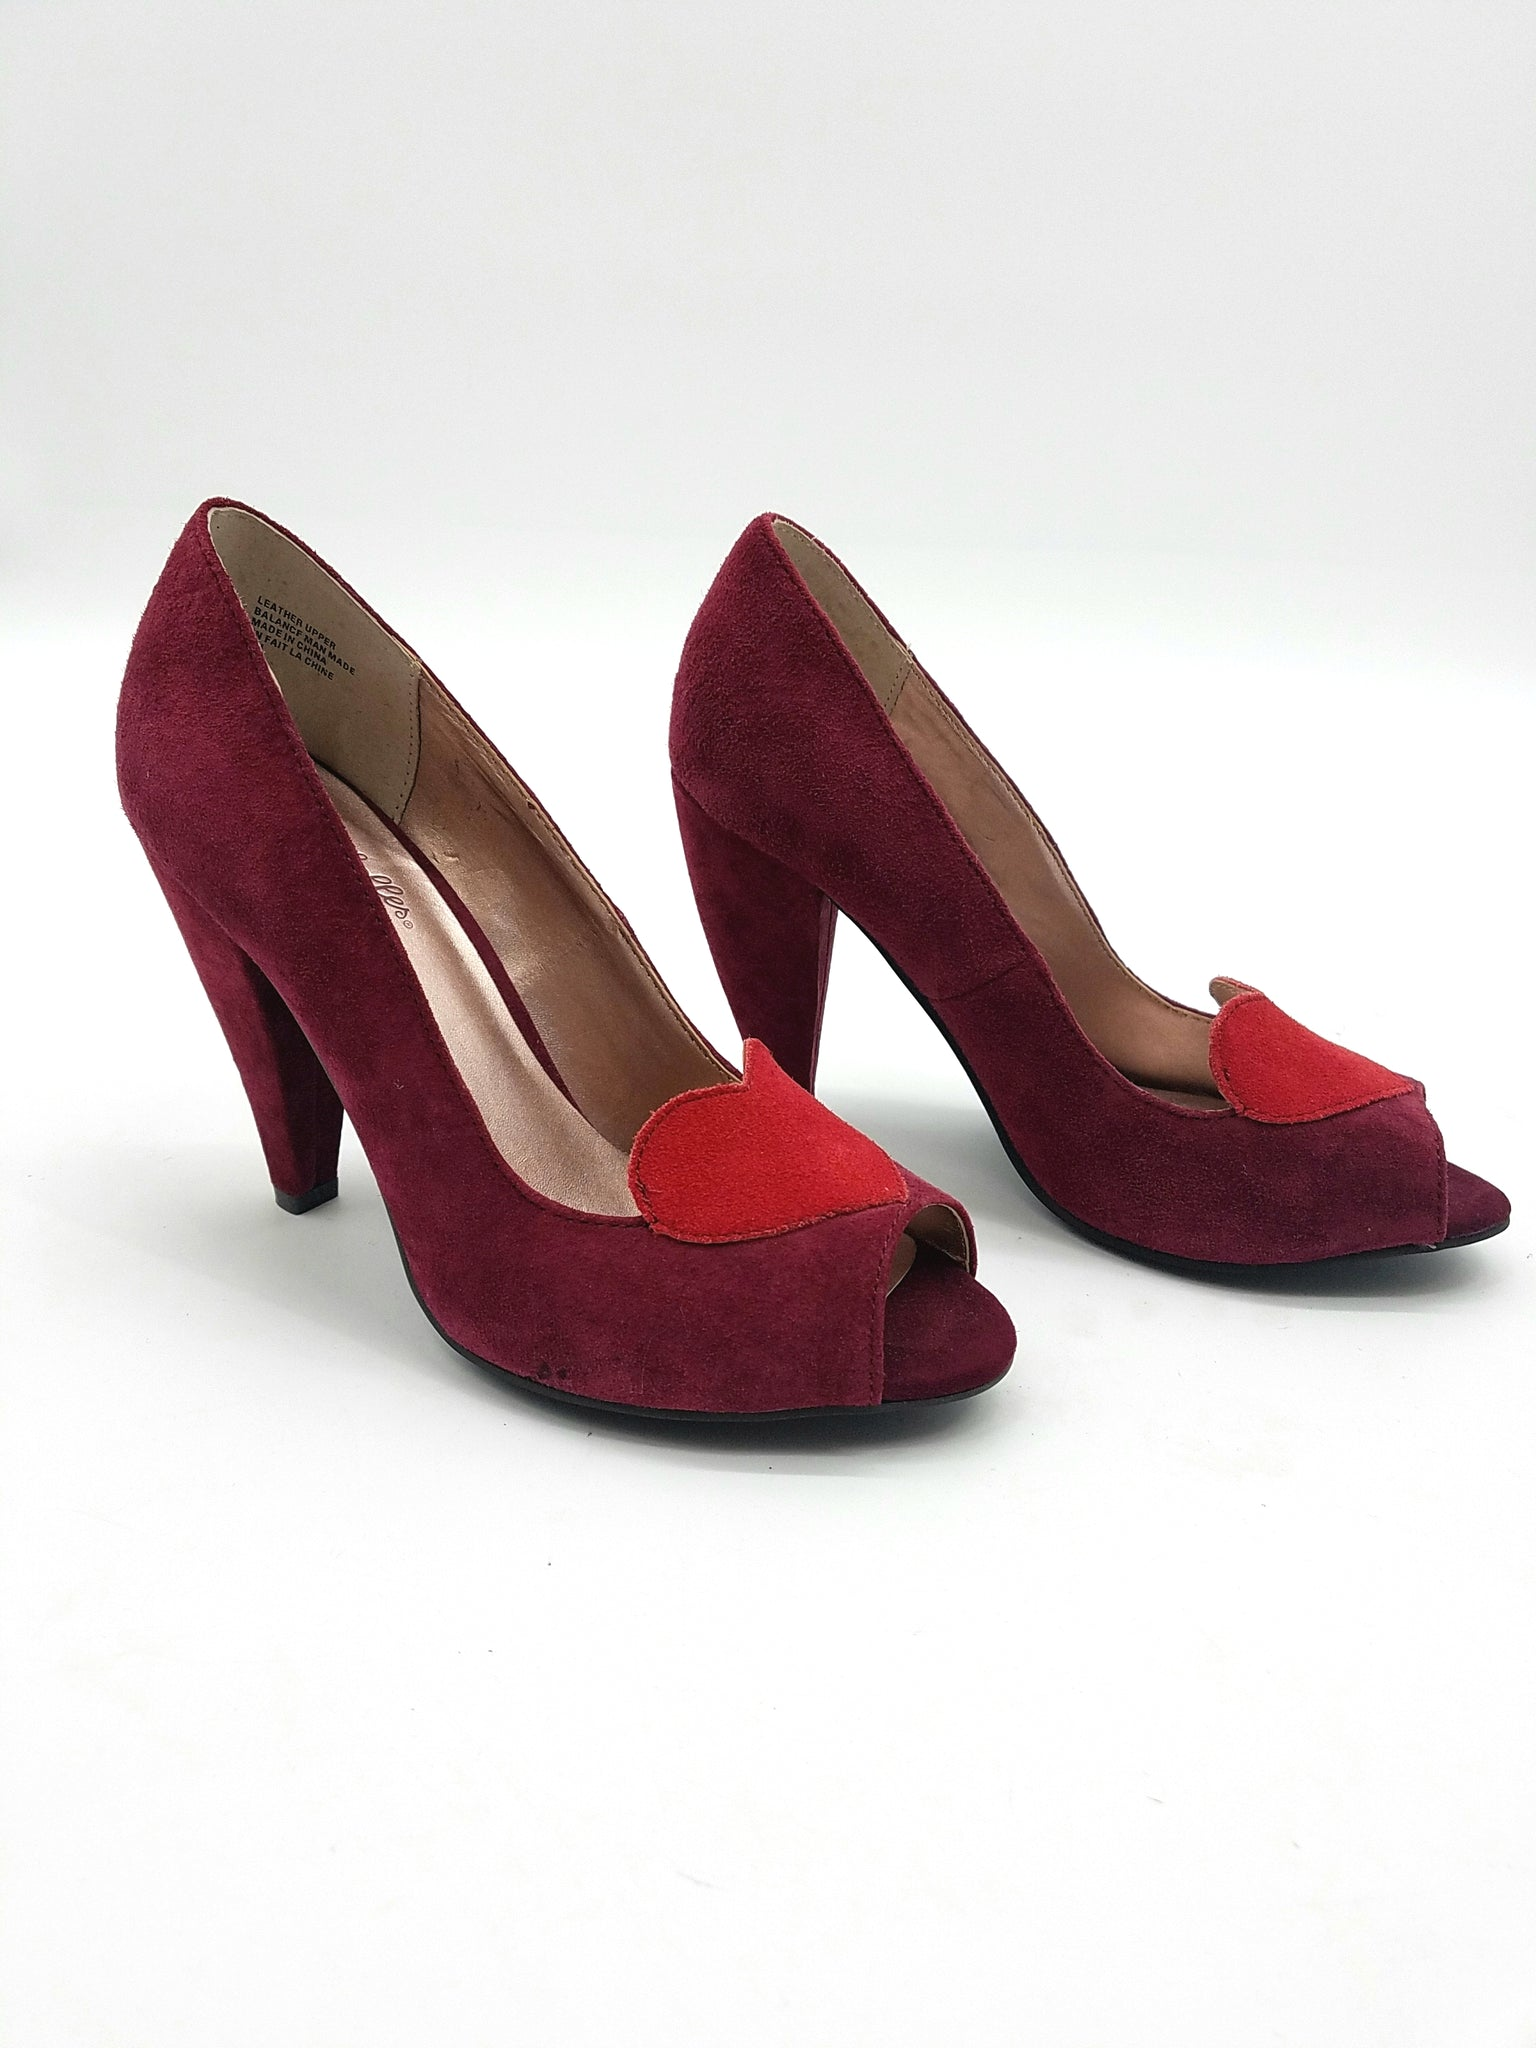 Seychelles Red Shoes, Heels